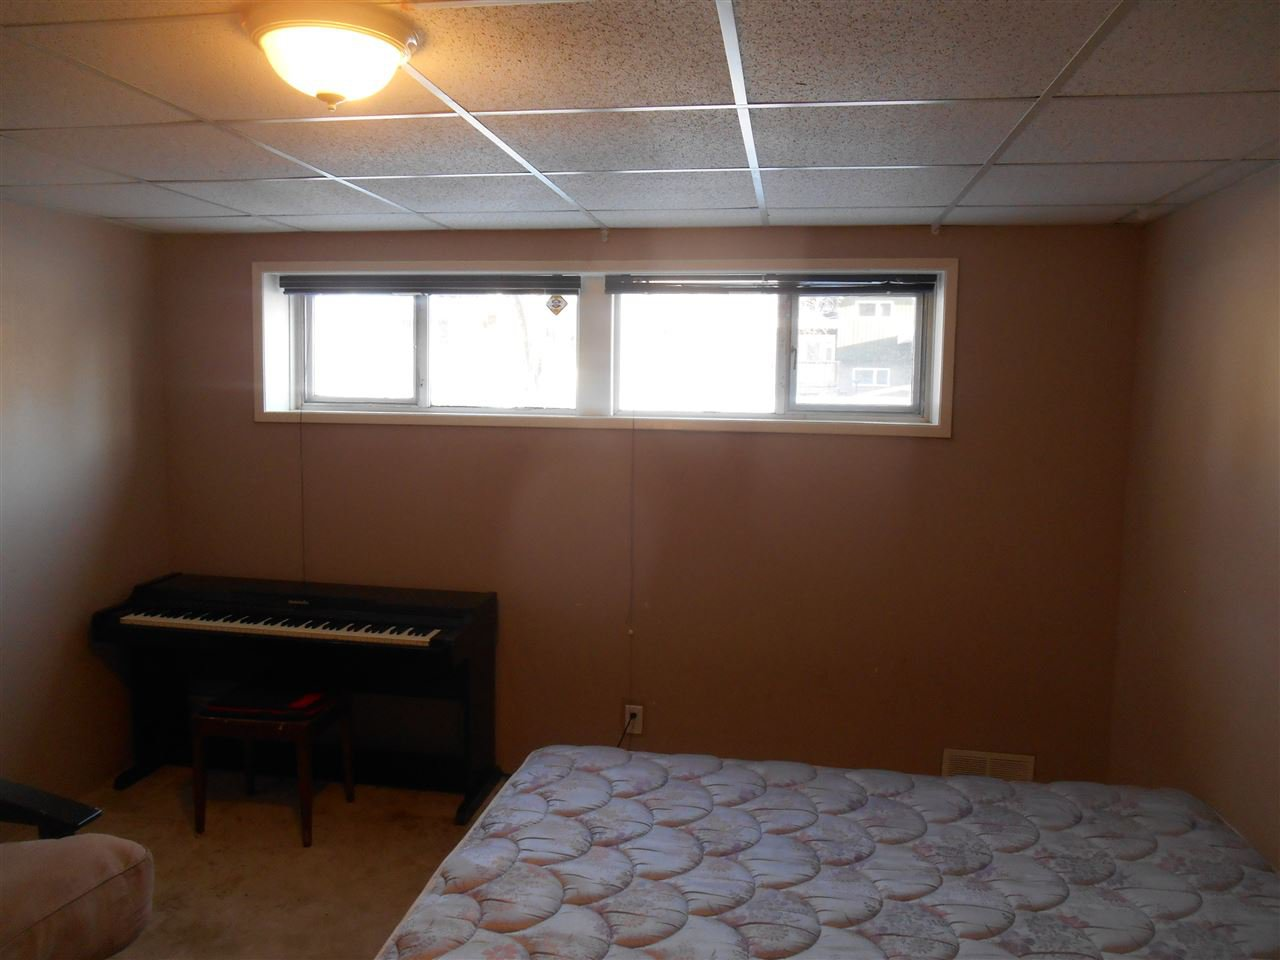 Photo 13: Photos: 1955 GARDEN Drive in Prince George: Seymour House for sale (PG City Central (Zone 72))  : MLS®# R2120742